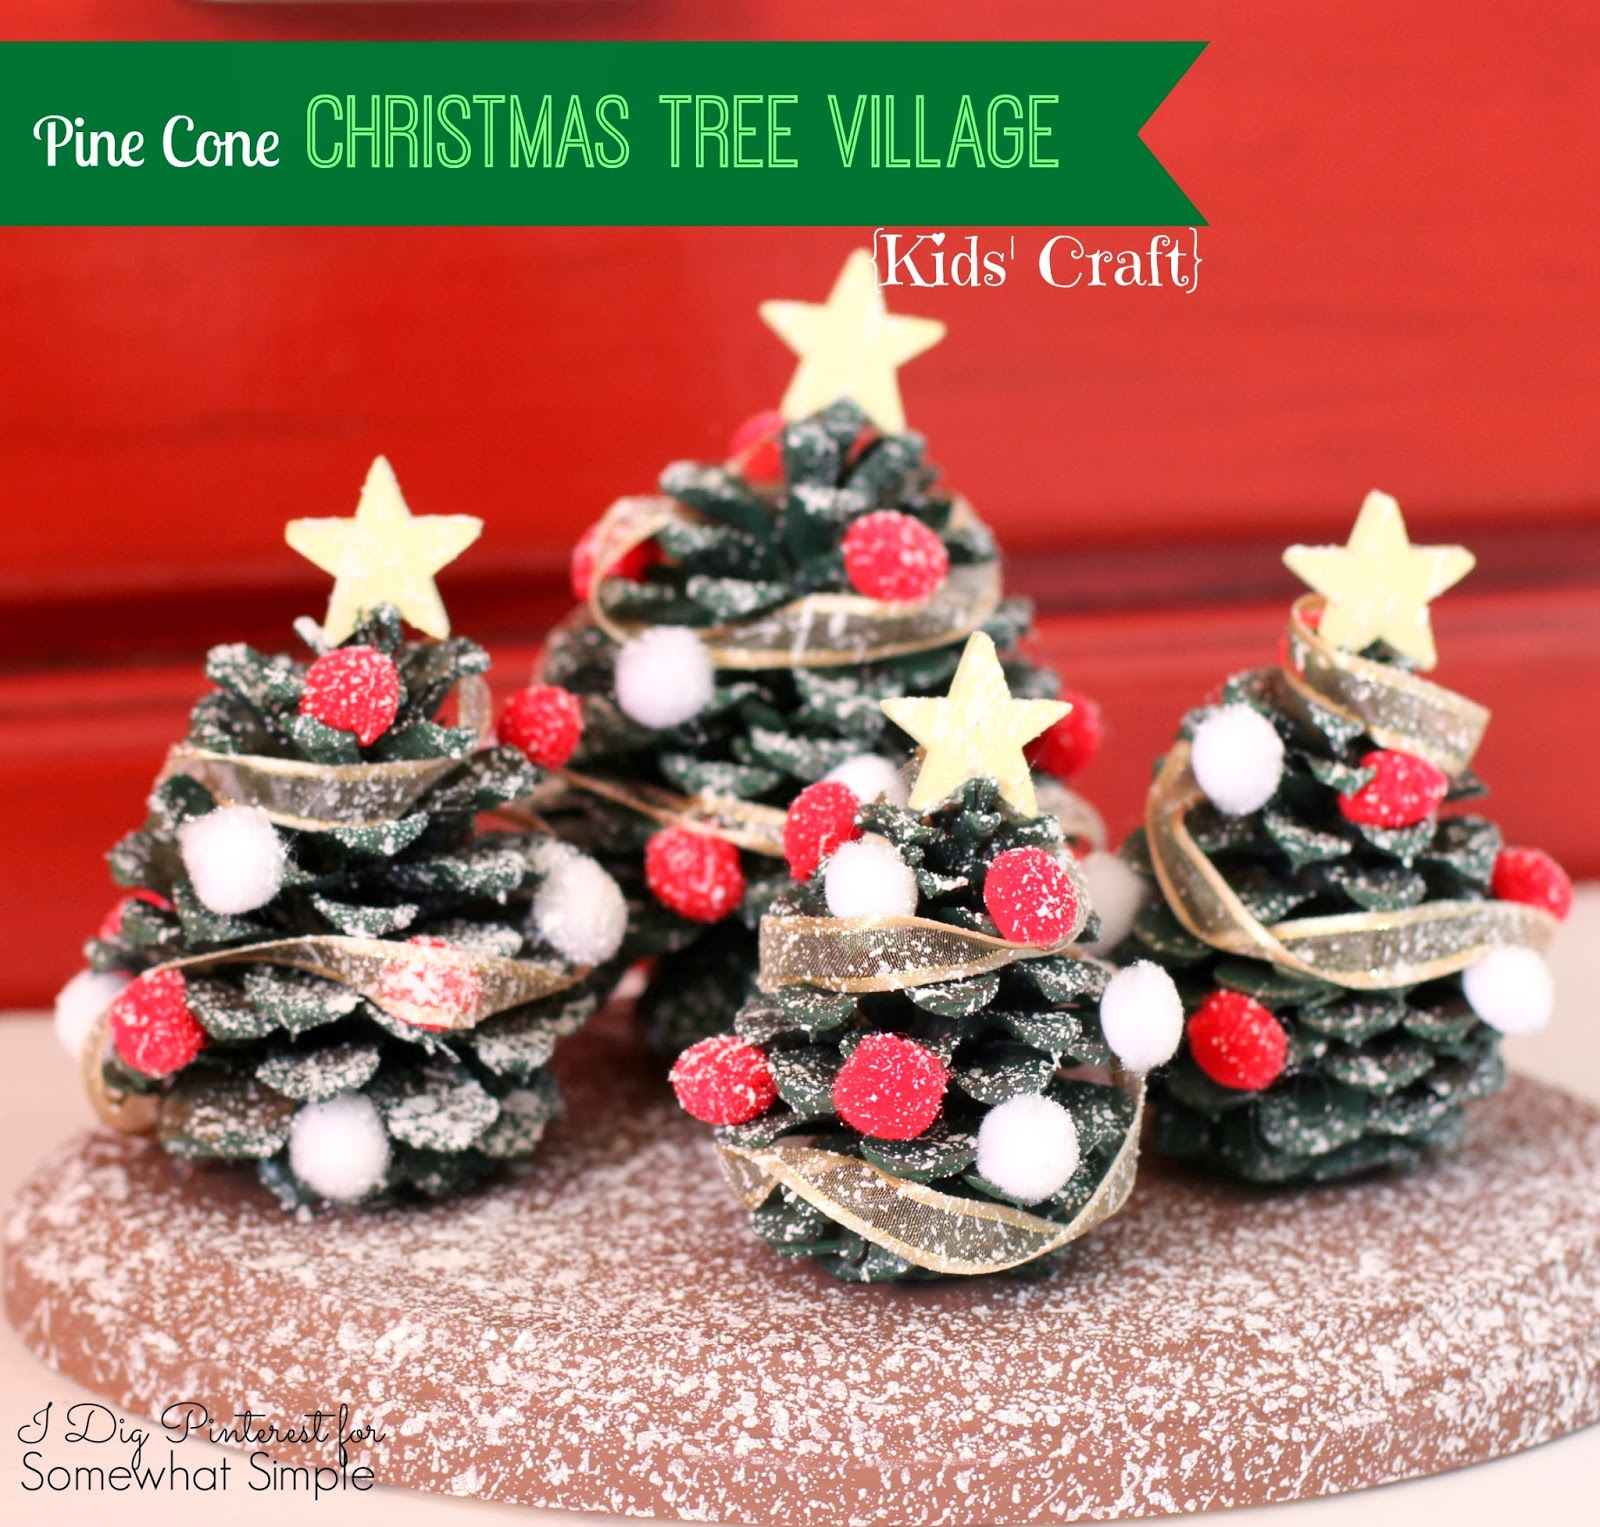 kids craft pine cone christmas tree village decoration - Decorating Large Pine Cones For Christmas